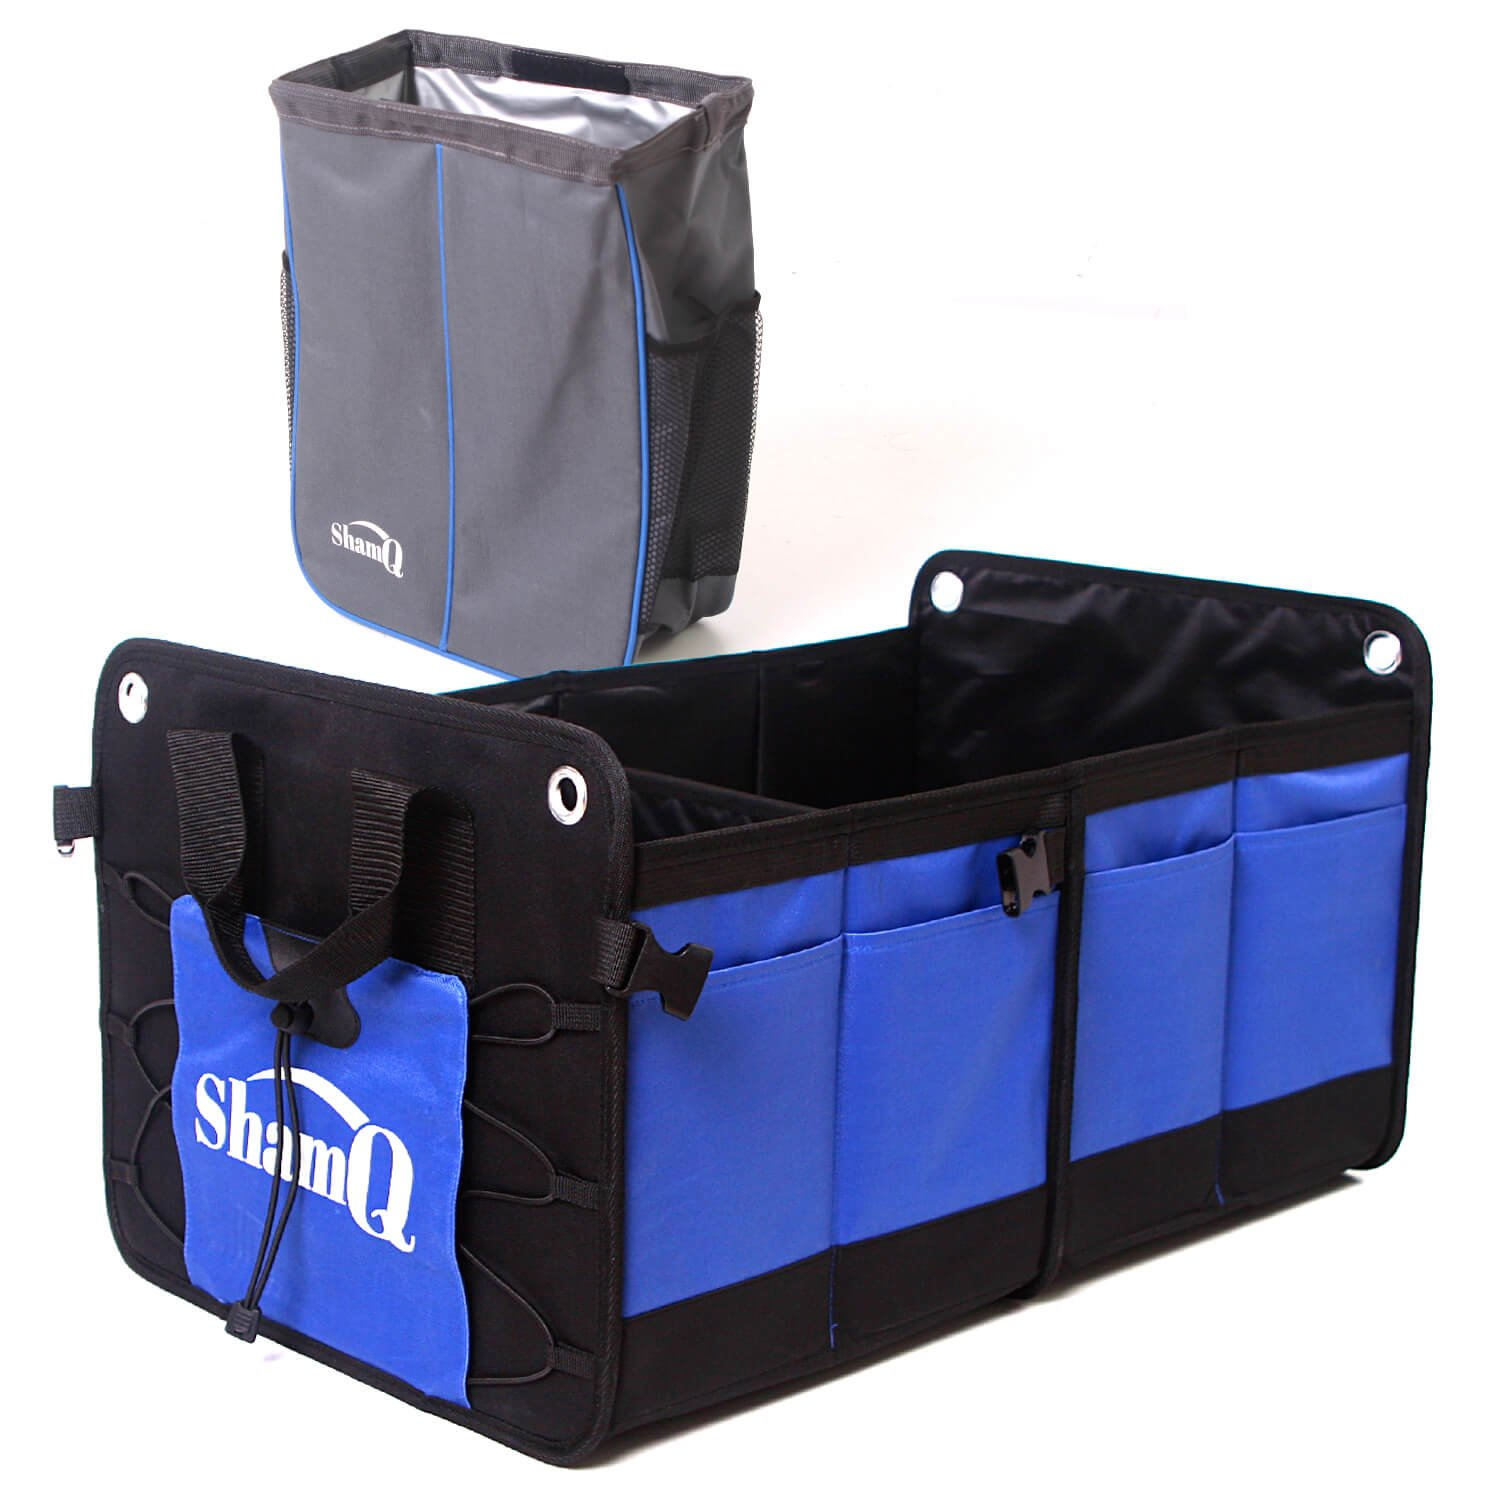 ShamQ Trunk Storage Organizer - Extra Large Collapsible Come With Quality Trash Bag - Blue And Black | One Each ClutterFree